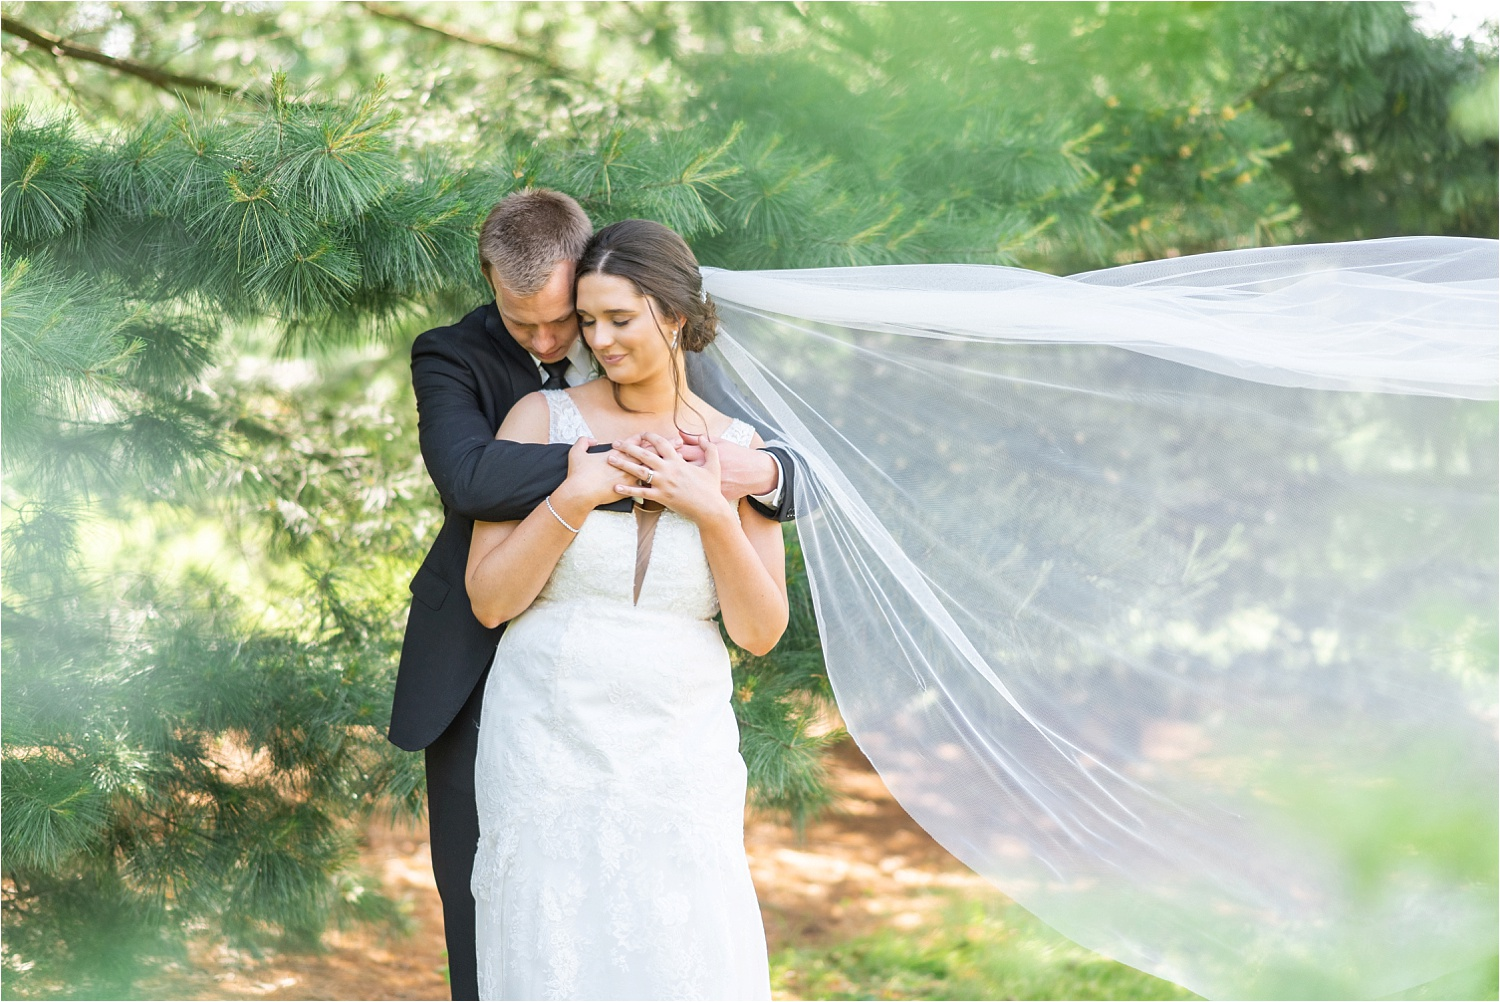 gorgeous spring wedding photos at boardman park in boardman ohio